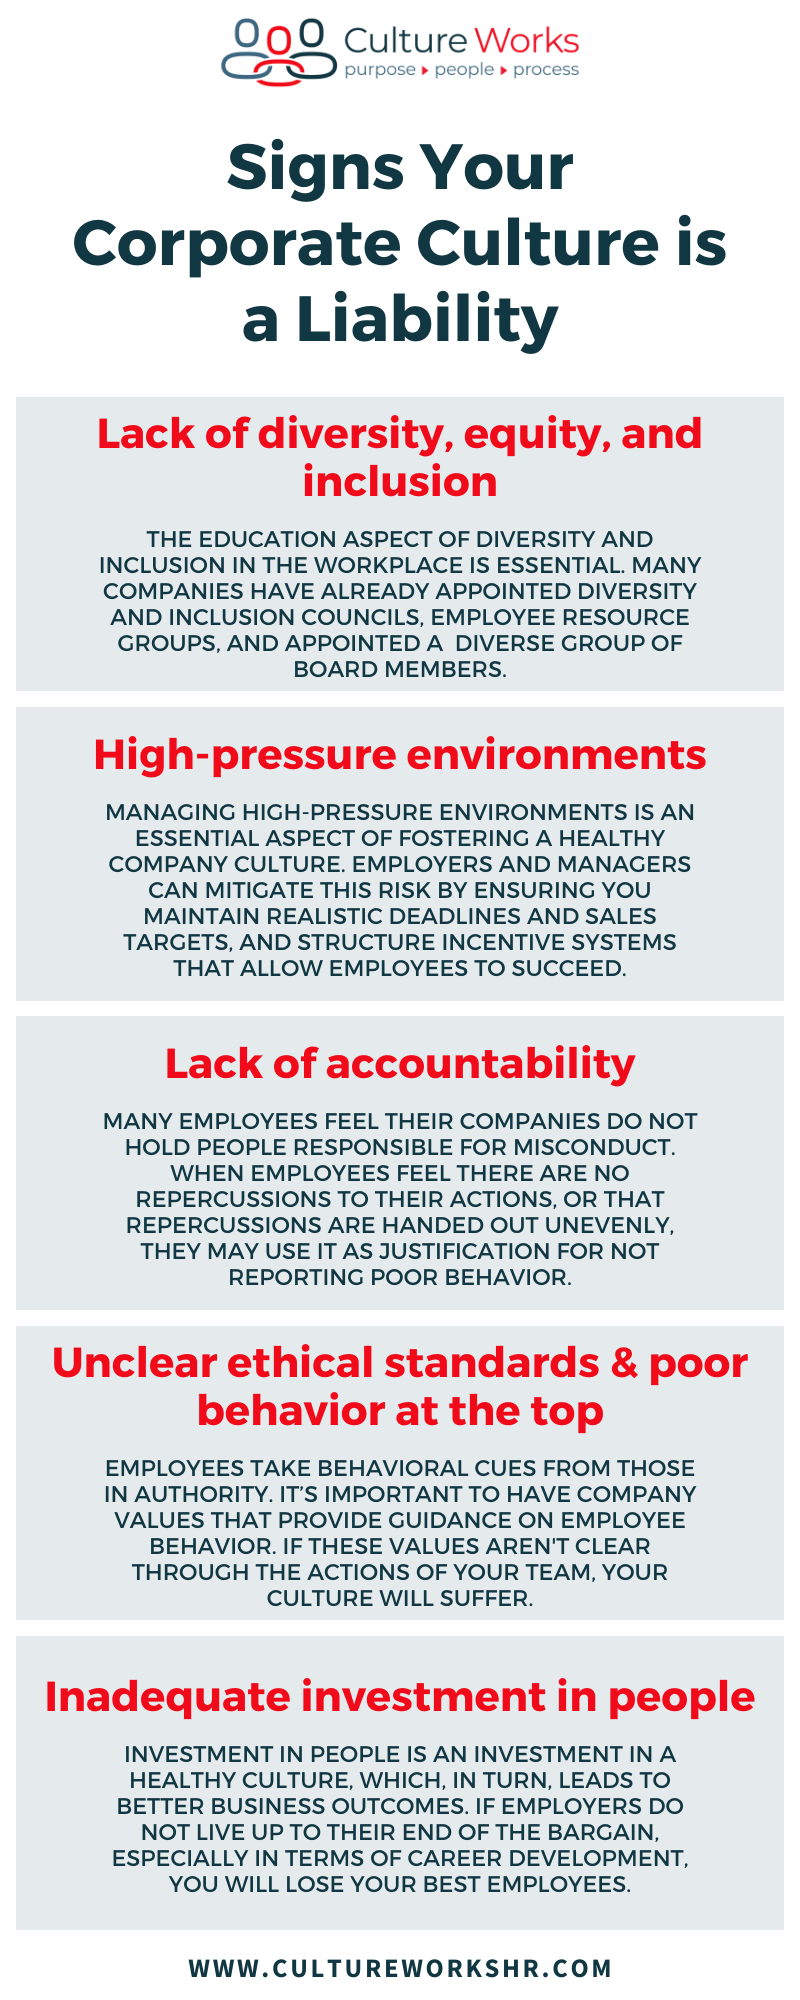 Signs Your Corporate Culture is a Liability